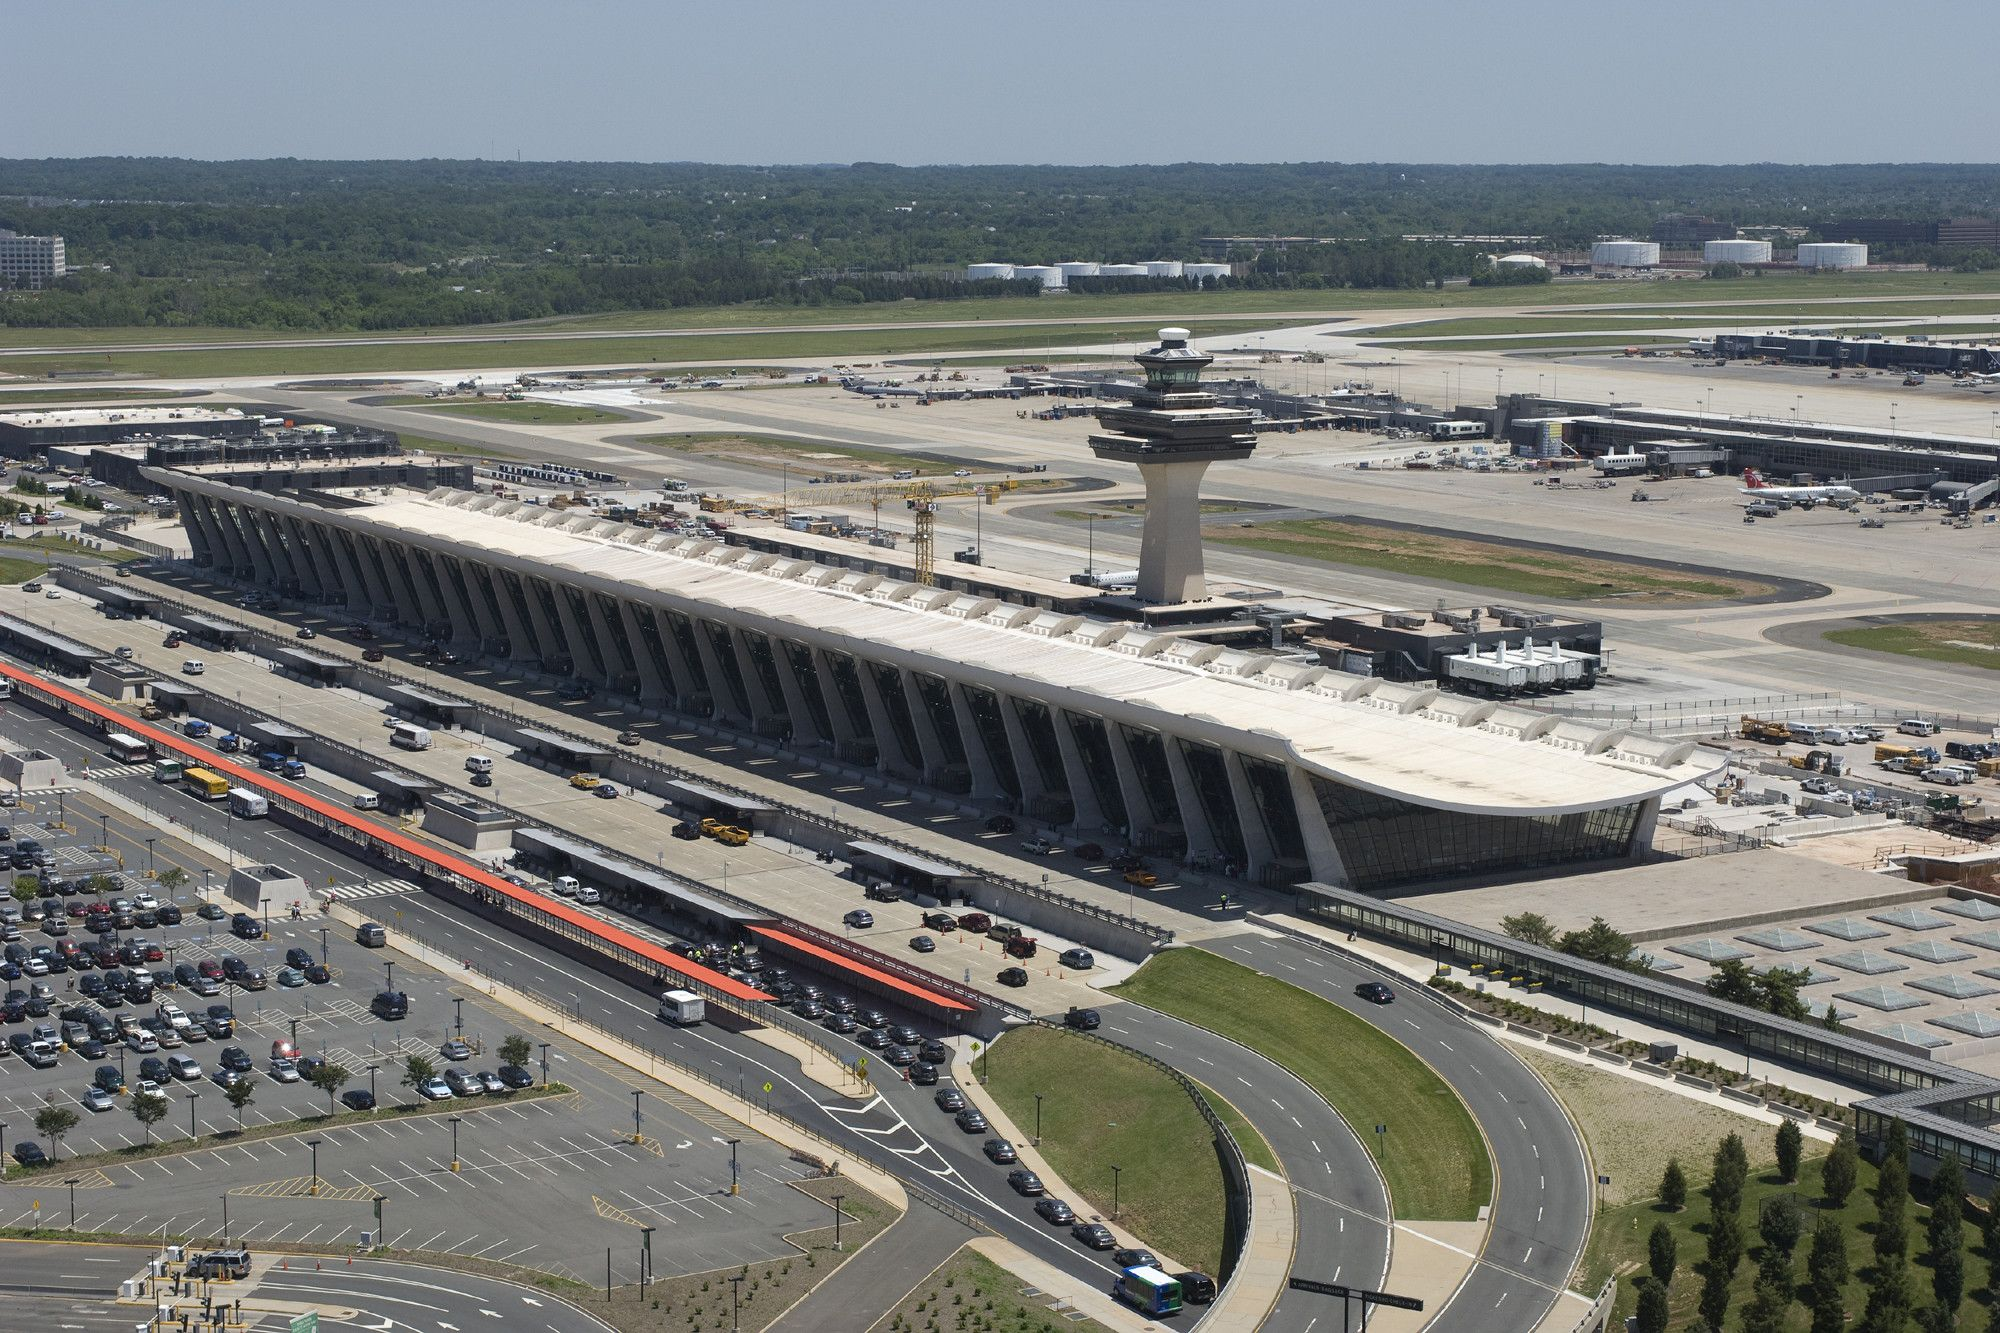 7eb2946349cd75bc99e1a37a92f243b7 - How To Get From Washington Dulles To Downtown Dc